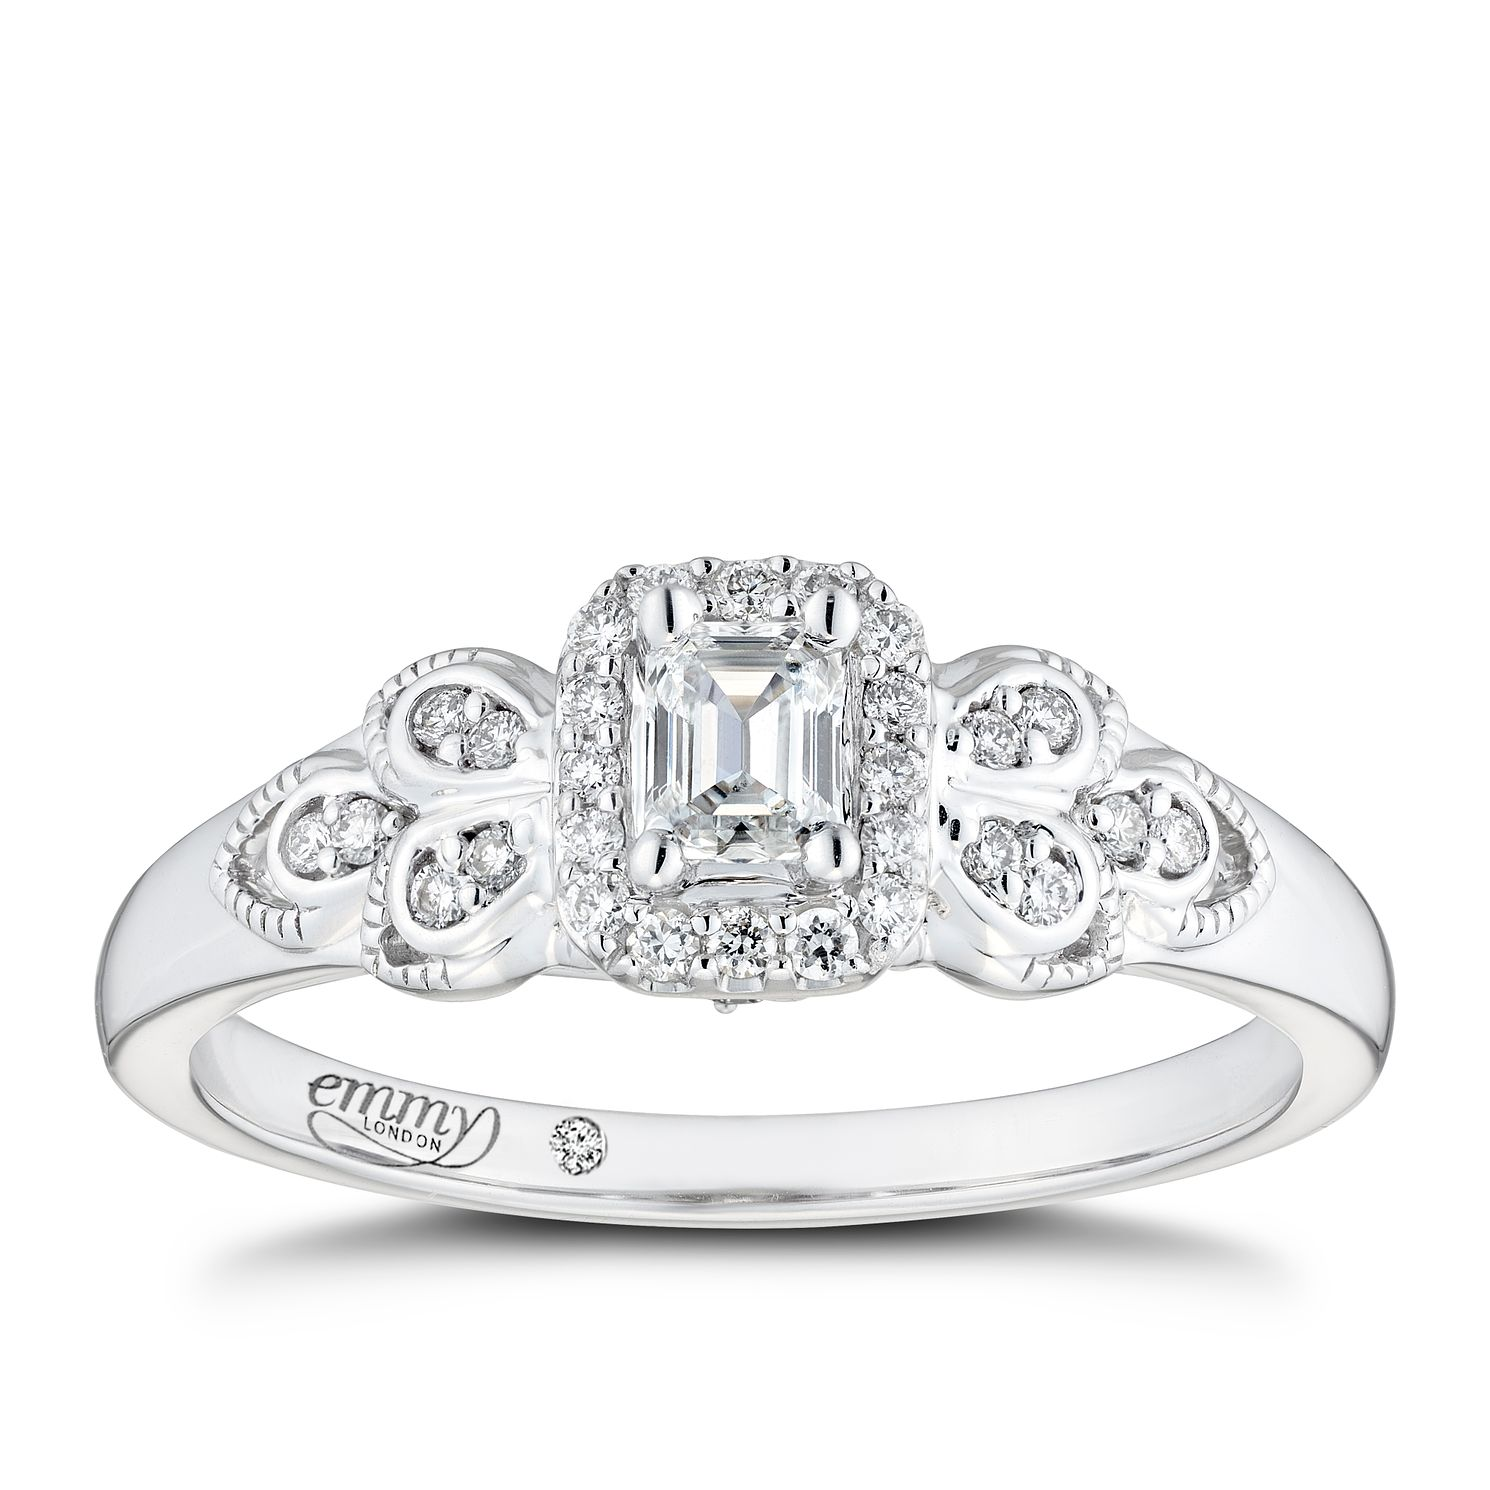 Emmy London 18ct White Gold 1/4ct Diamond Halo Ring - Product number 3864901